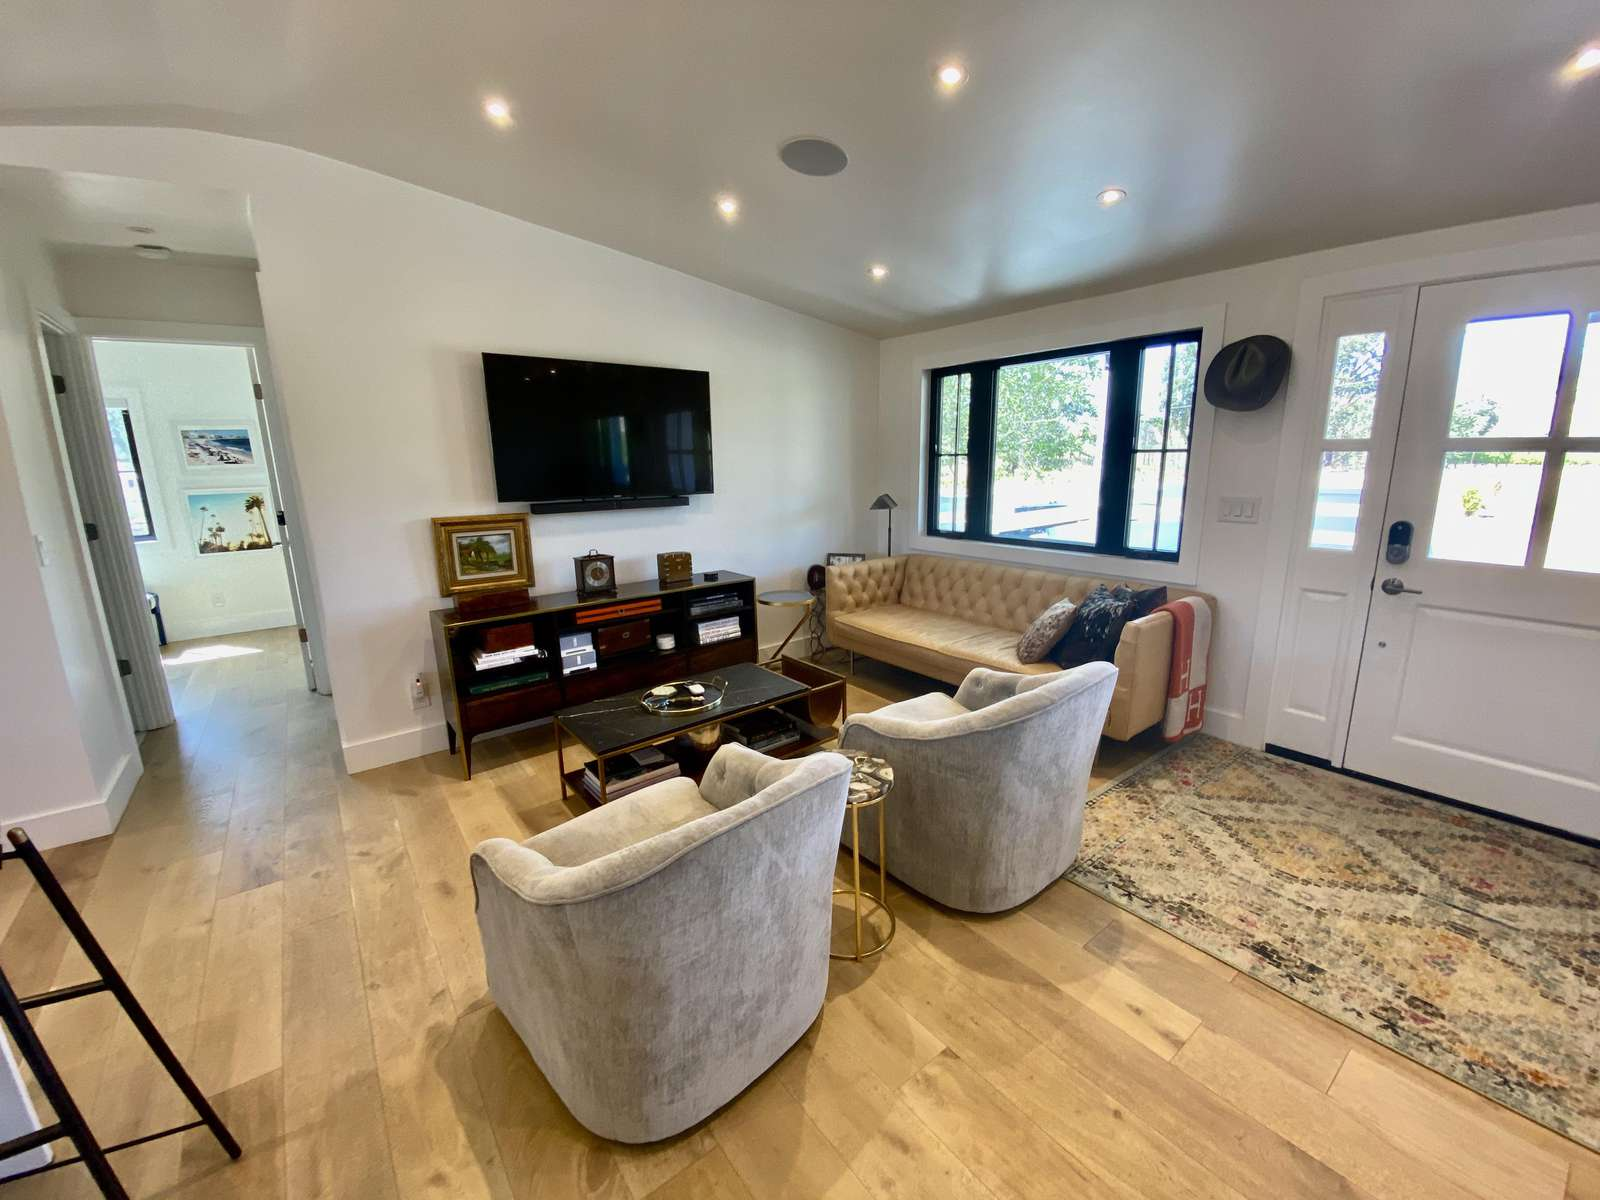 TV area of main living space